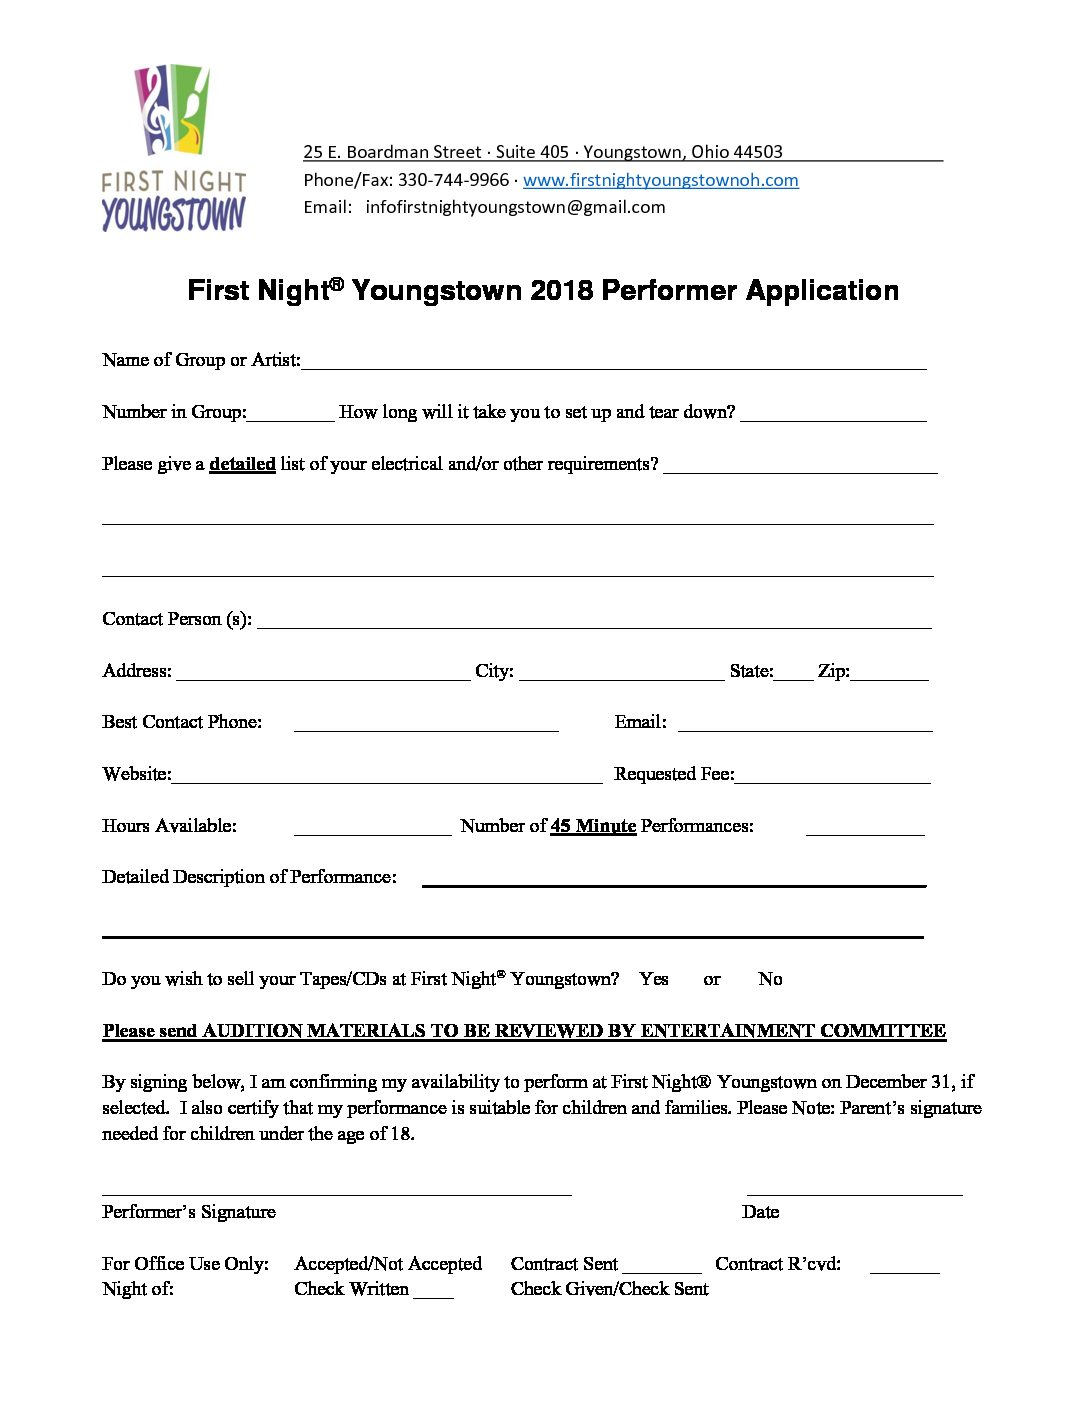 FNY-2018-Performer Application